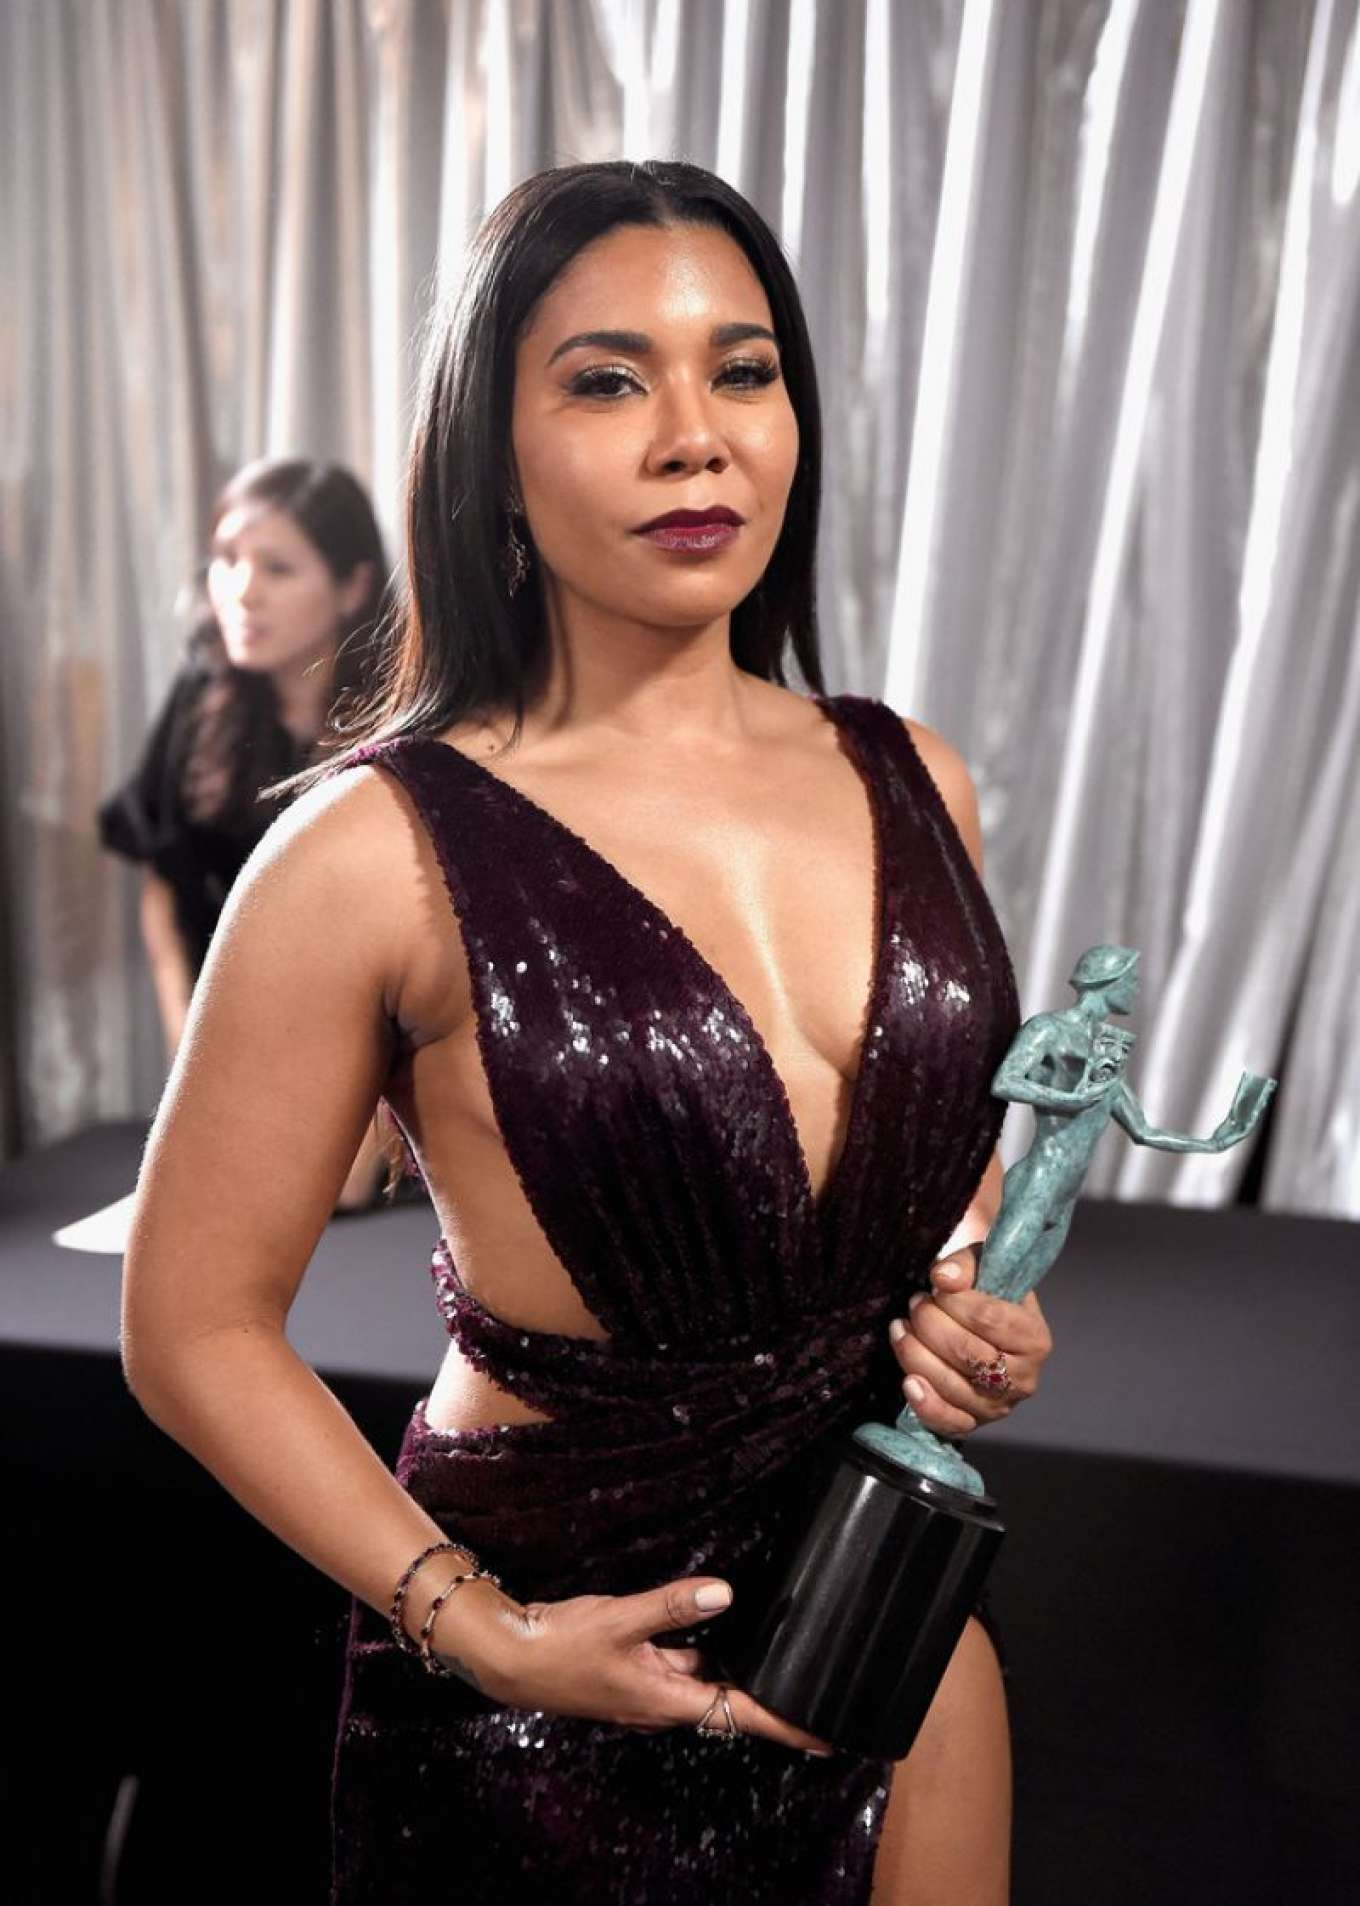 Jessica Pimentel naked (39 photo), Tits, Hot, Boobs, legs 2019